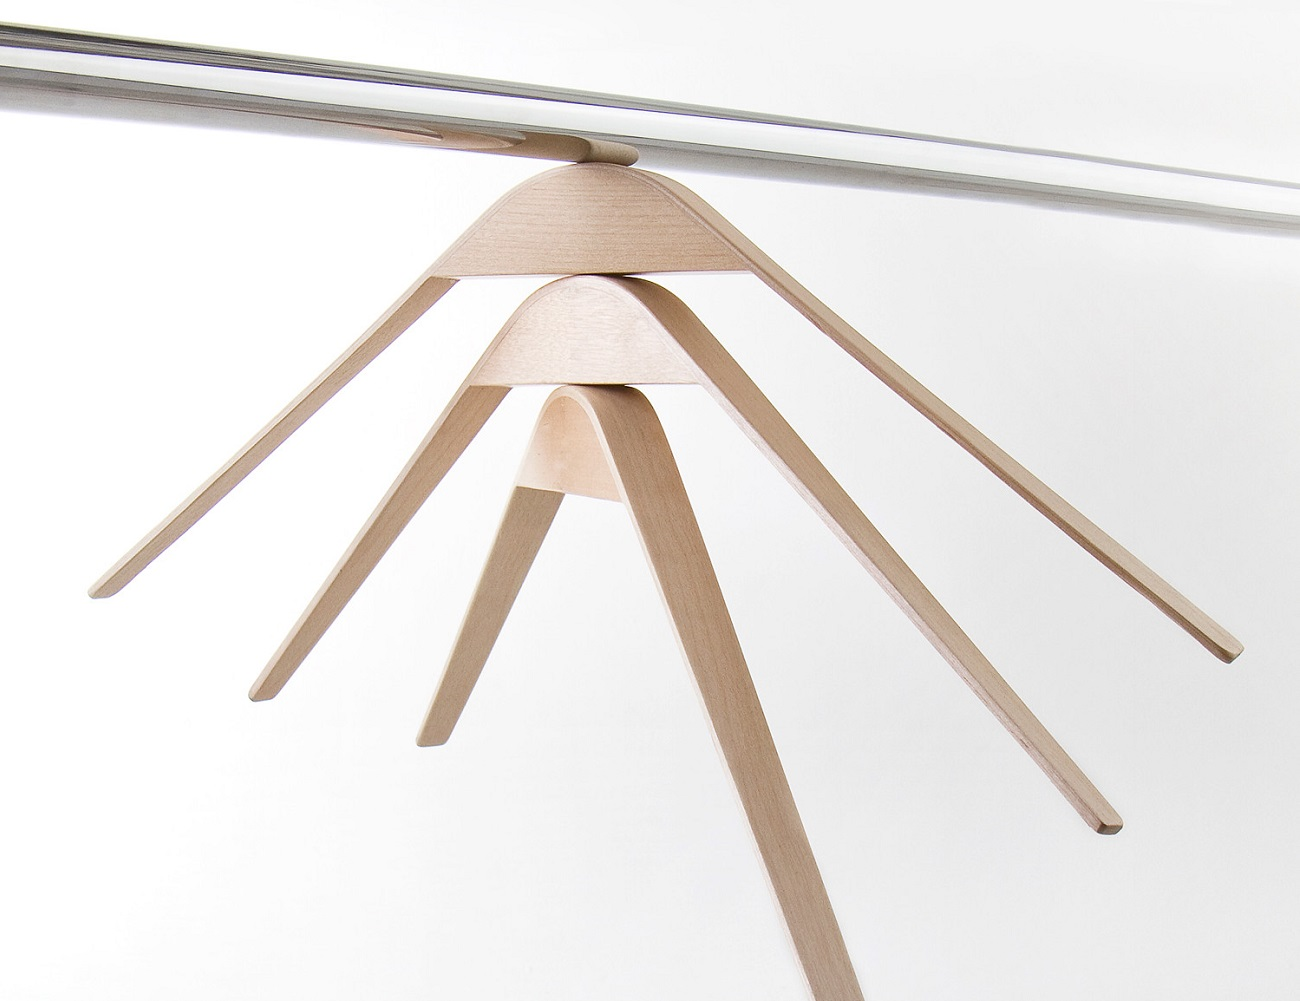 Cliq Magnetic Coat Hangers